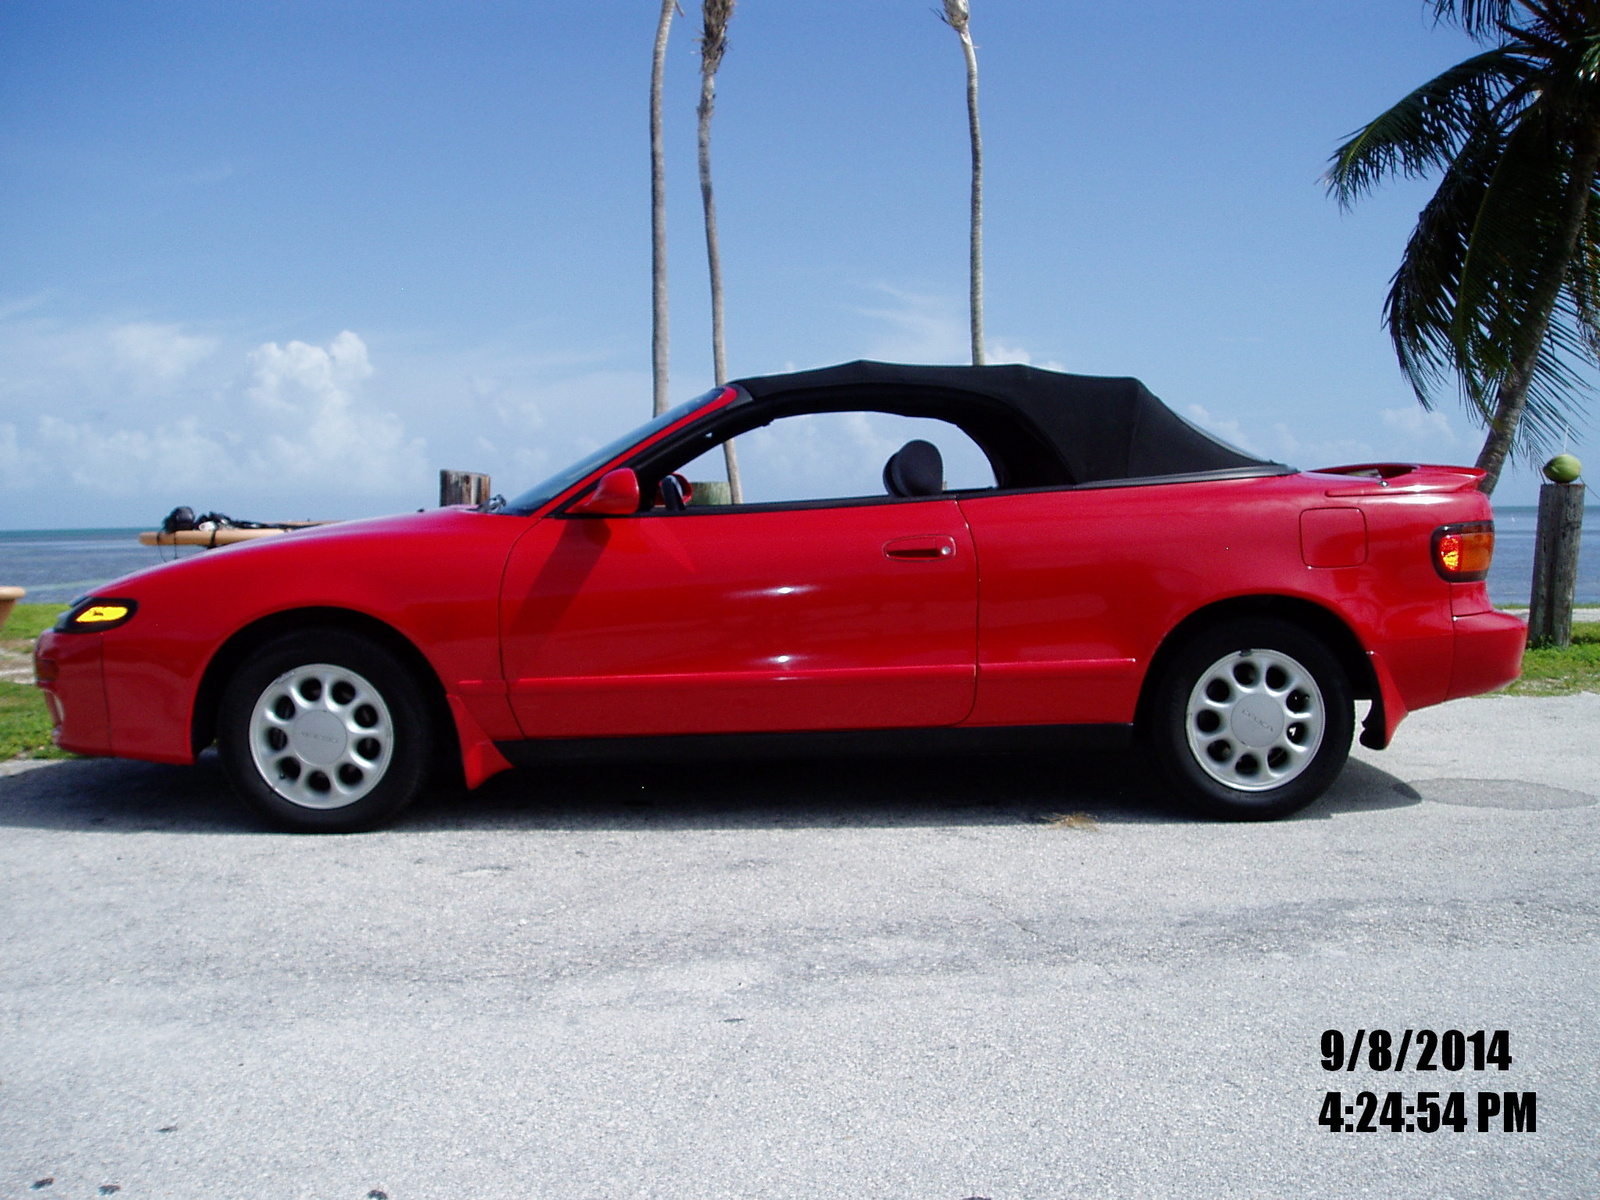 Toyota Celica Gt Convertible Pic on 1995 Mitsubishi Eclipse Convertible